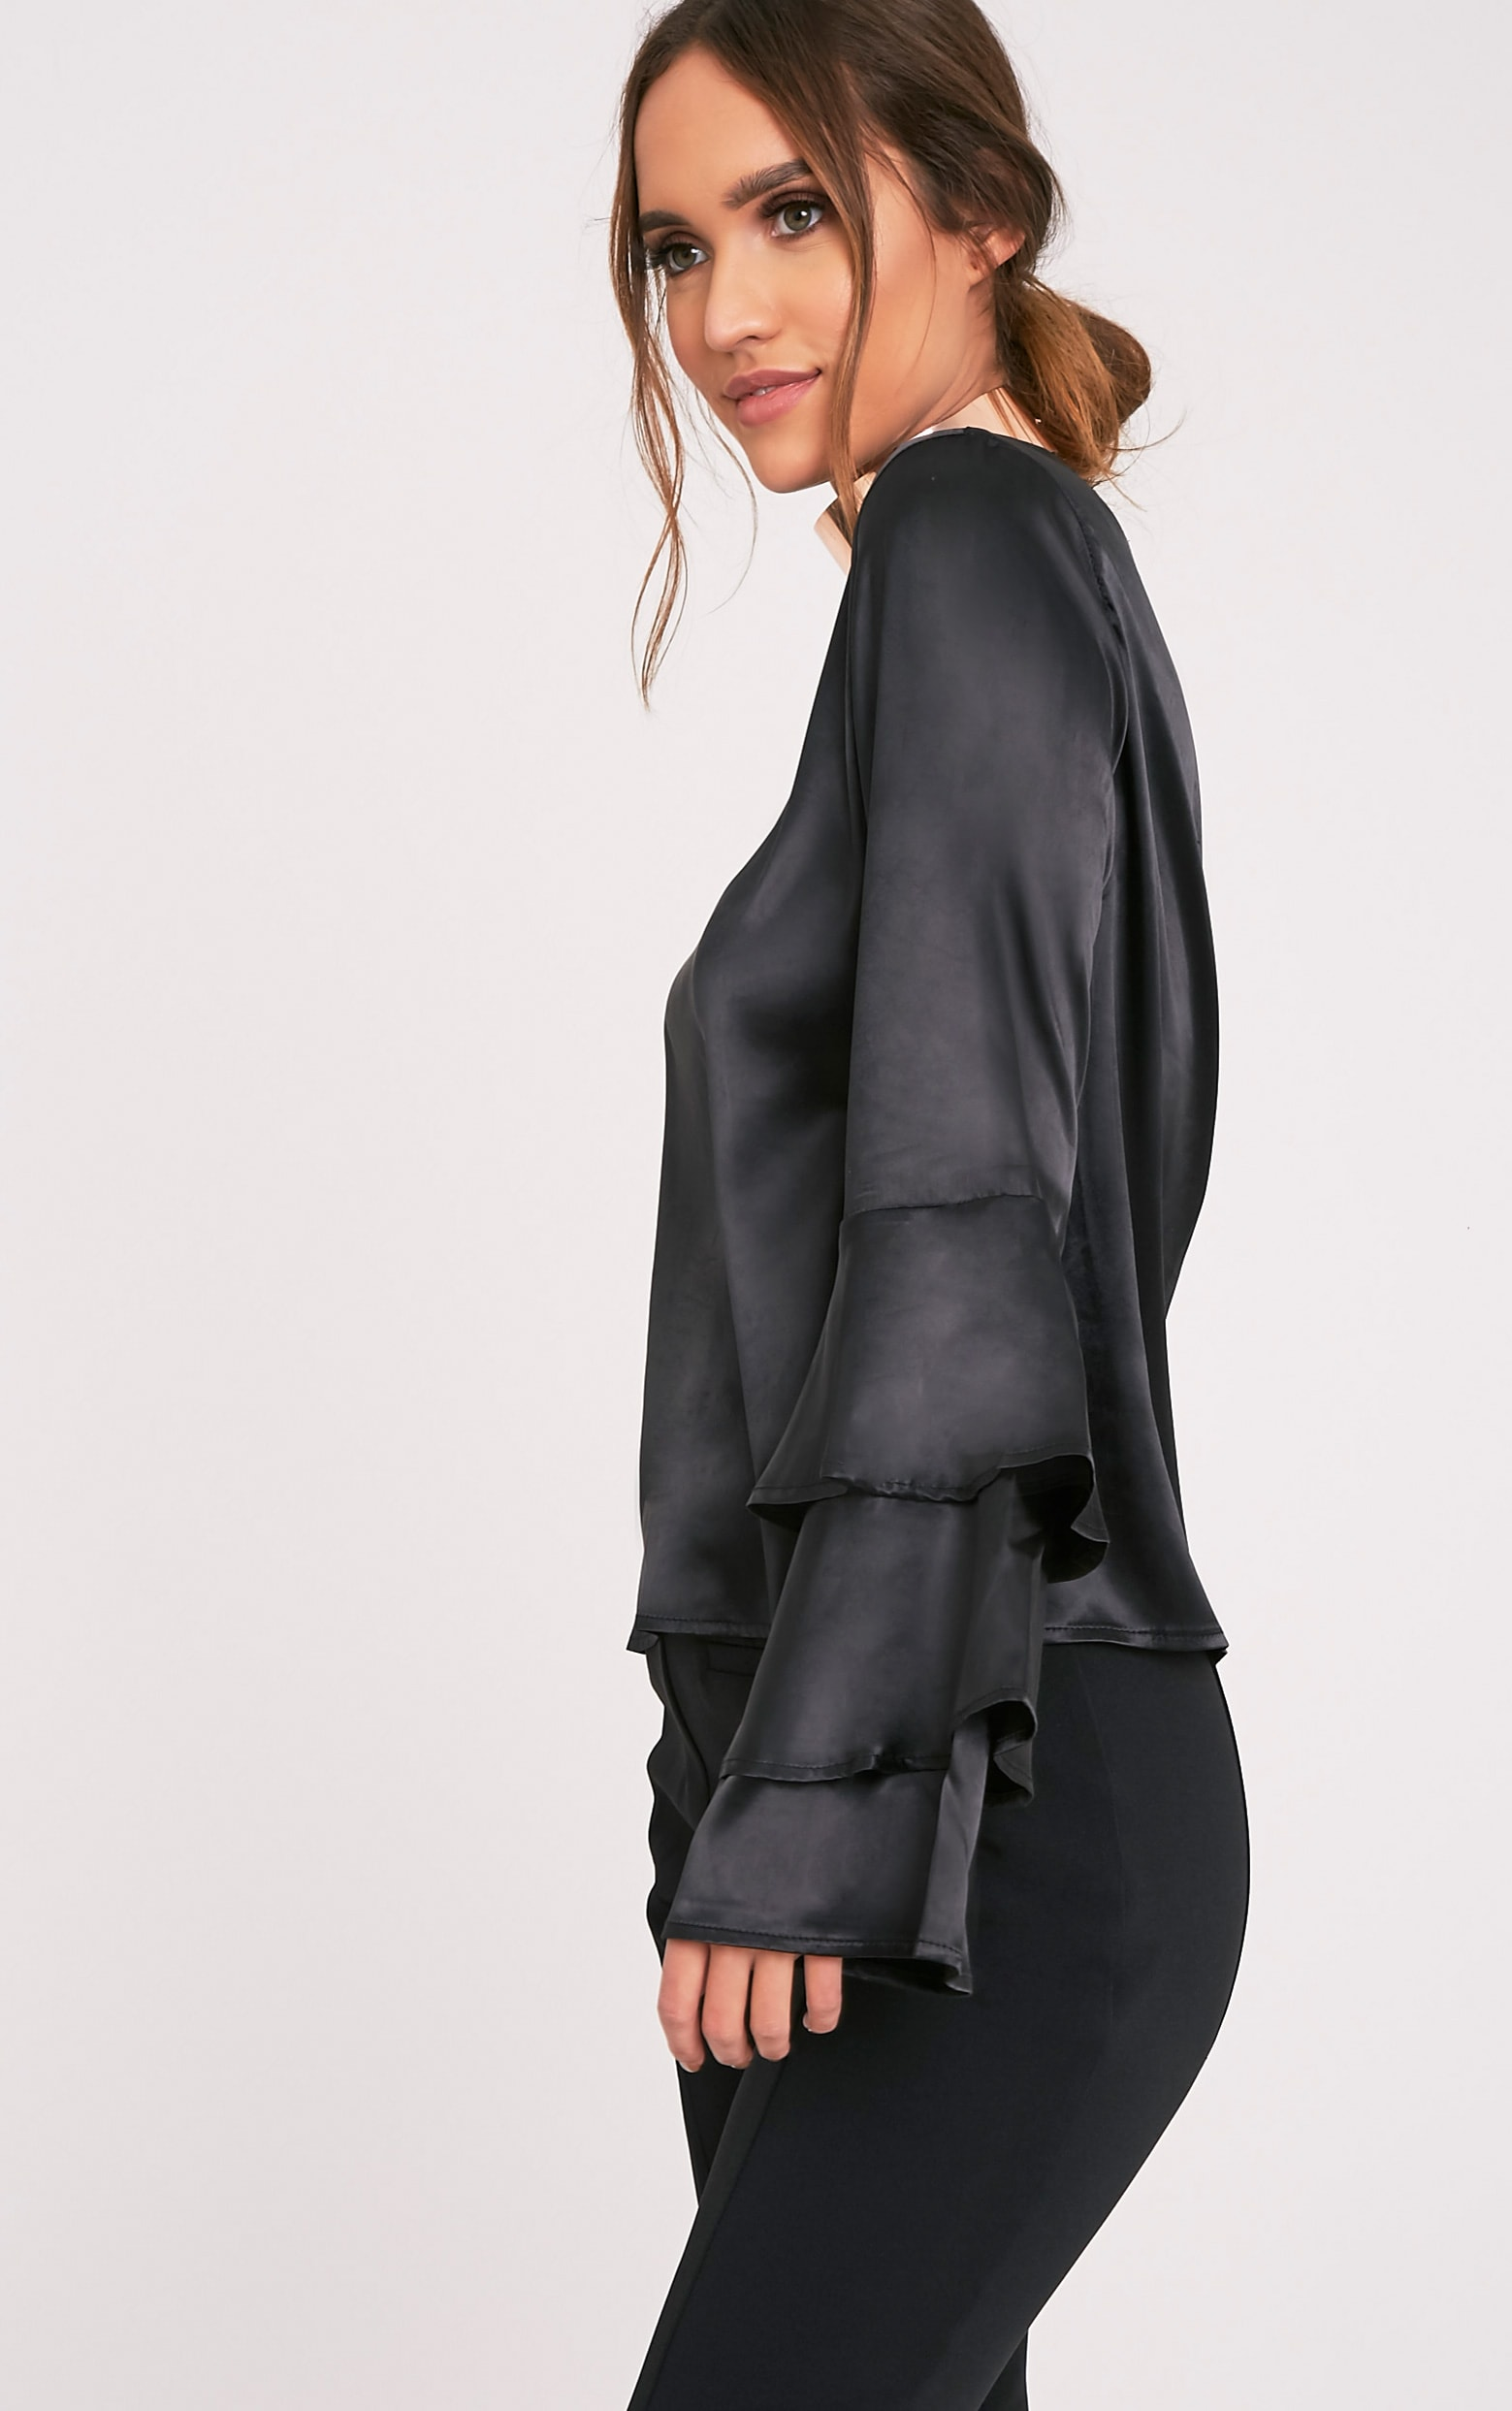 Layle Black Frill Sleeve Woven Blouse 4